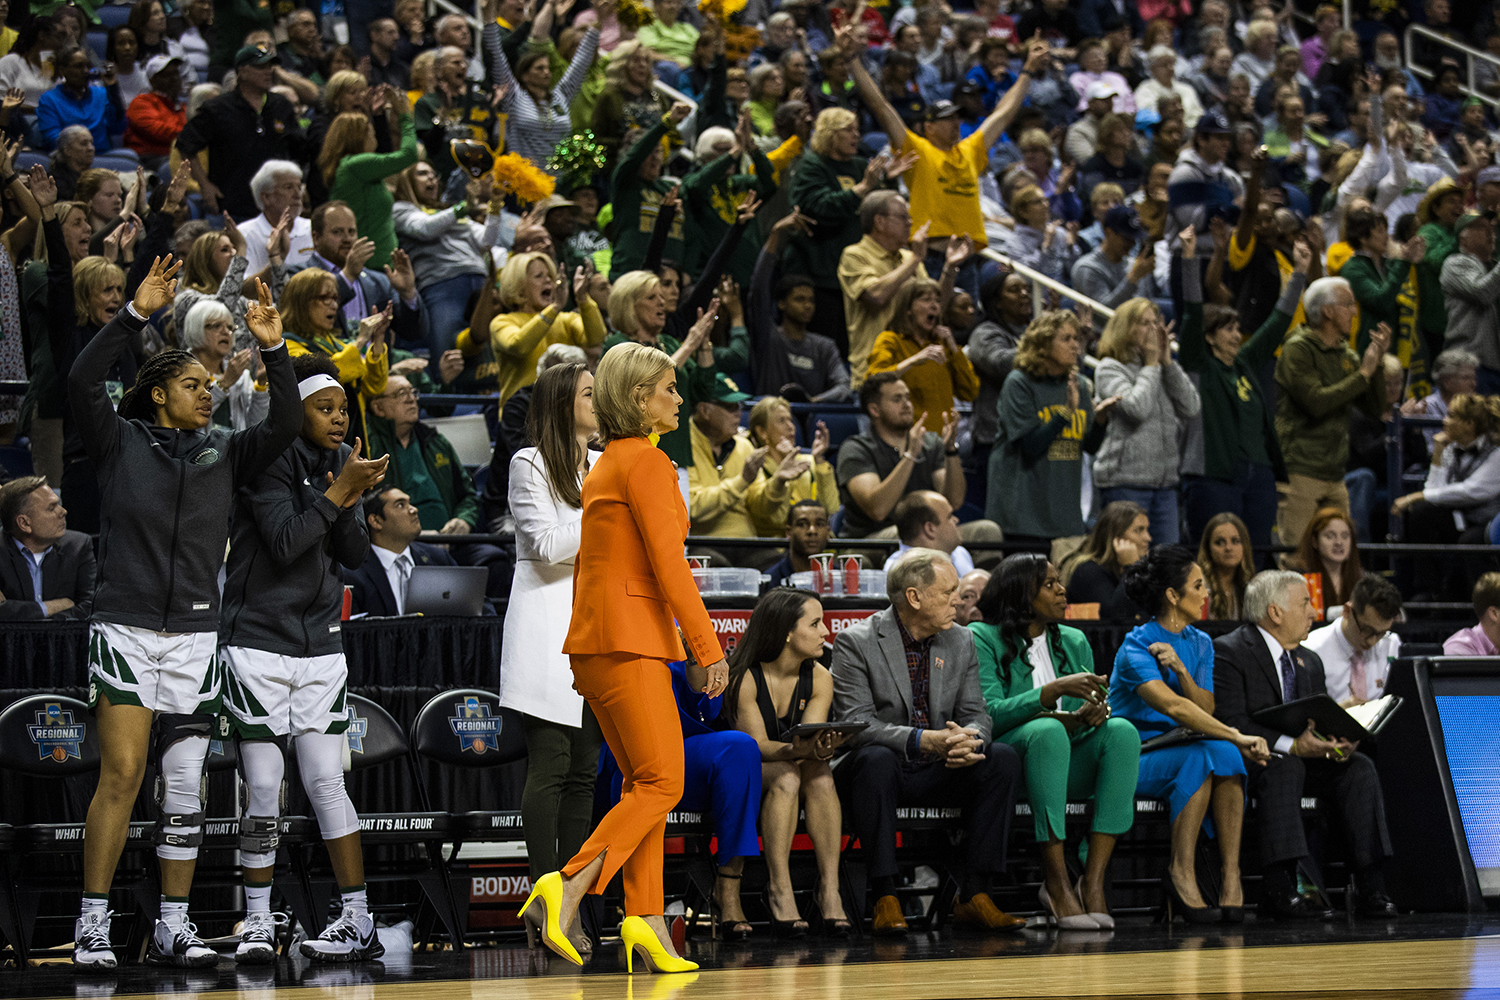 Baylor+fans+cheer+during+the+NCAA+Elite+8+game+against+Baylor+at+the+Greensboro+Coliseum+Complex+on+Monday%2C+April+1%2C+2019.+The+Bears+defeated+the+Hawkeyes+85-53.